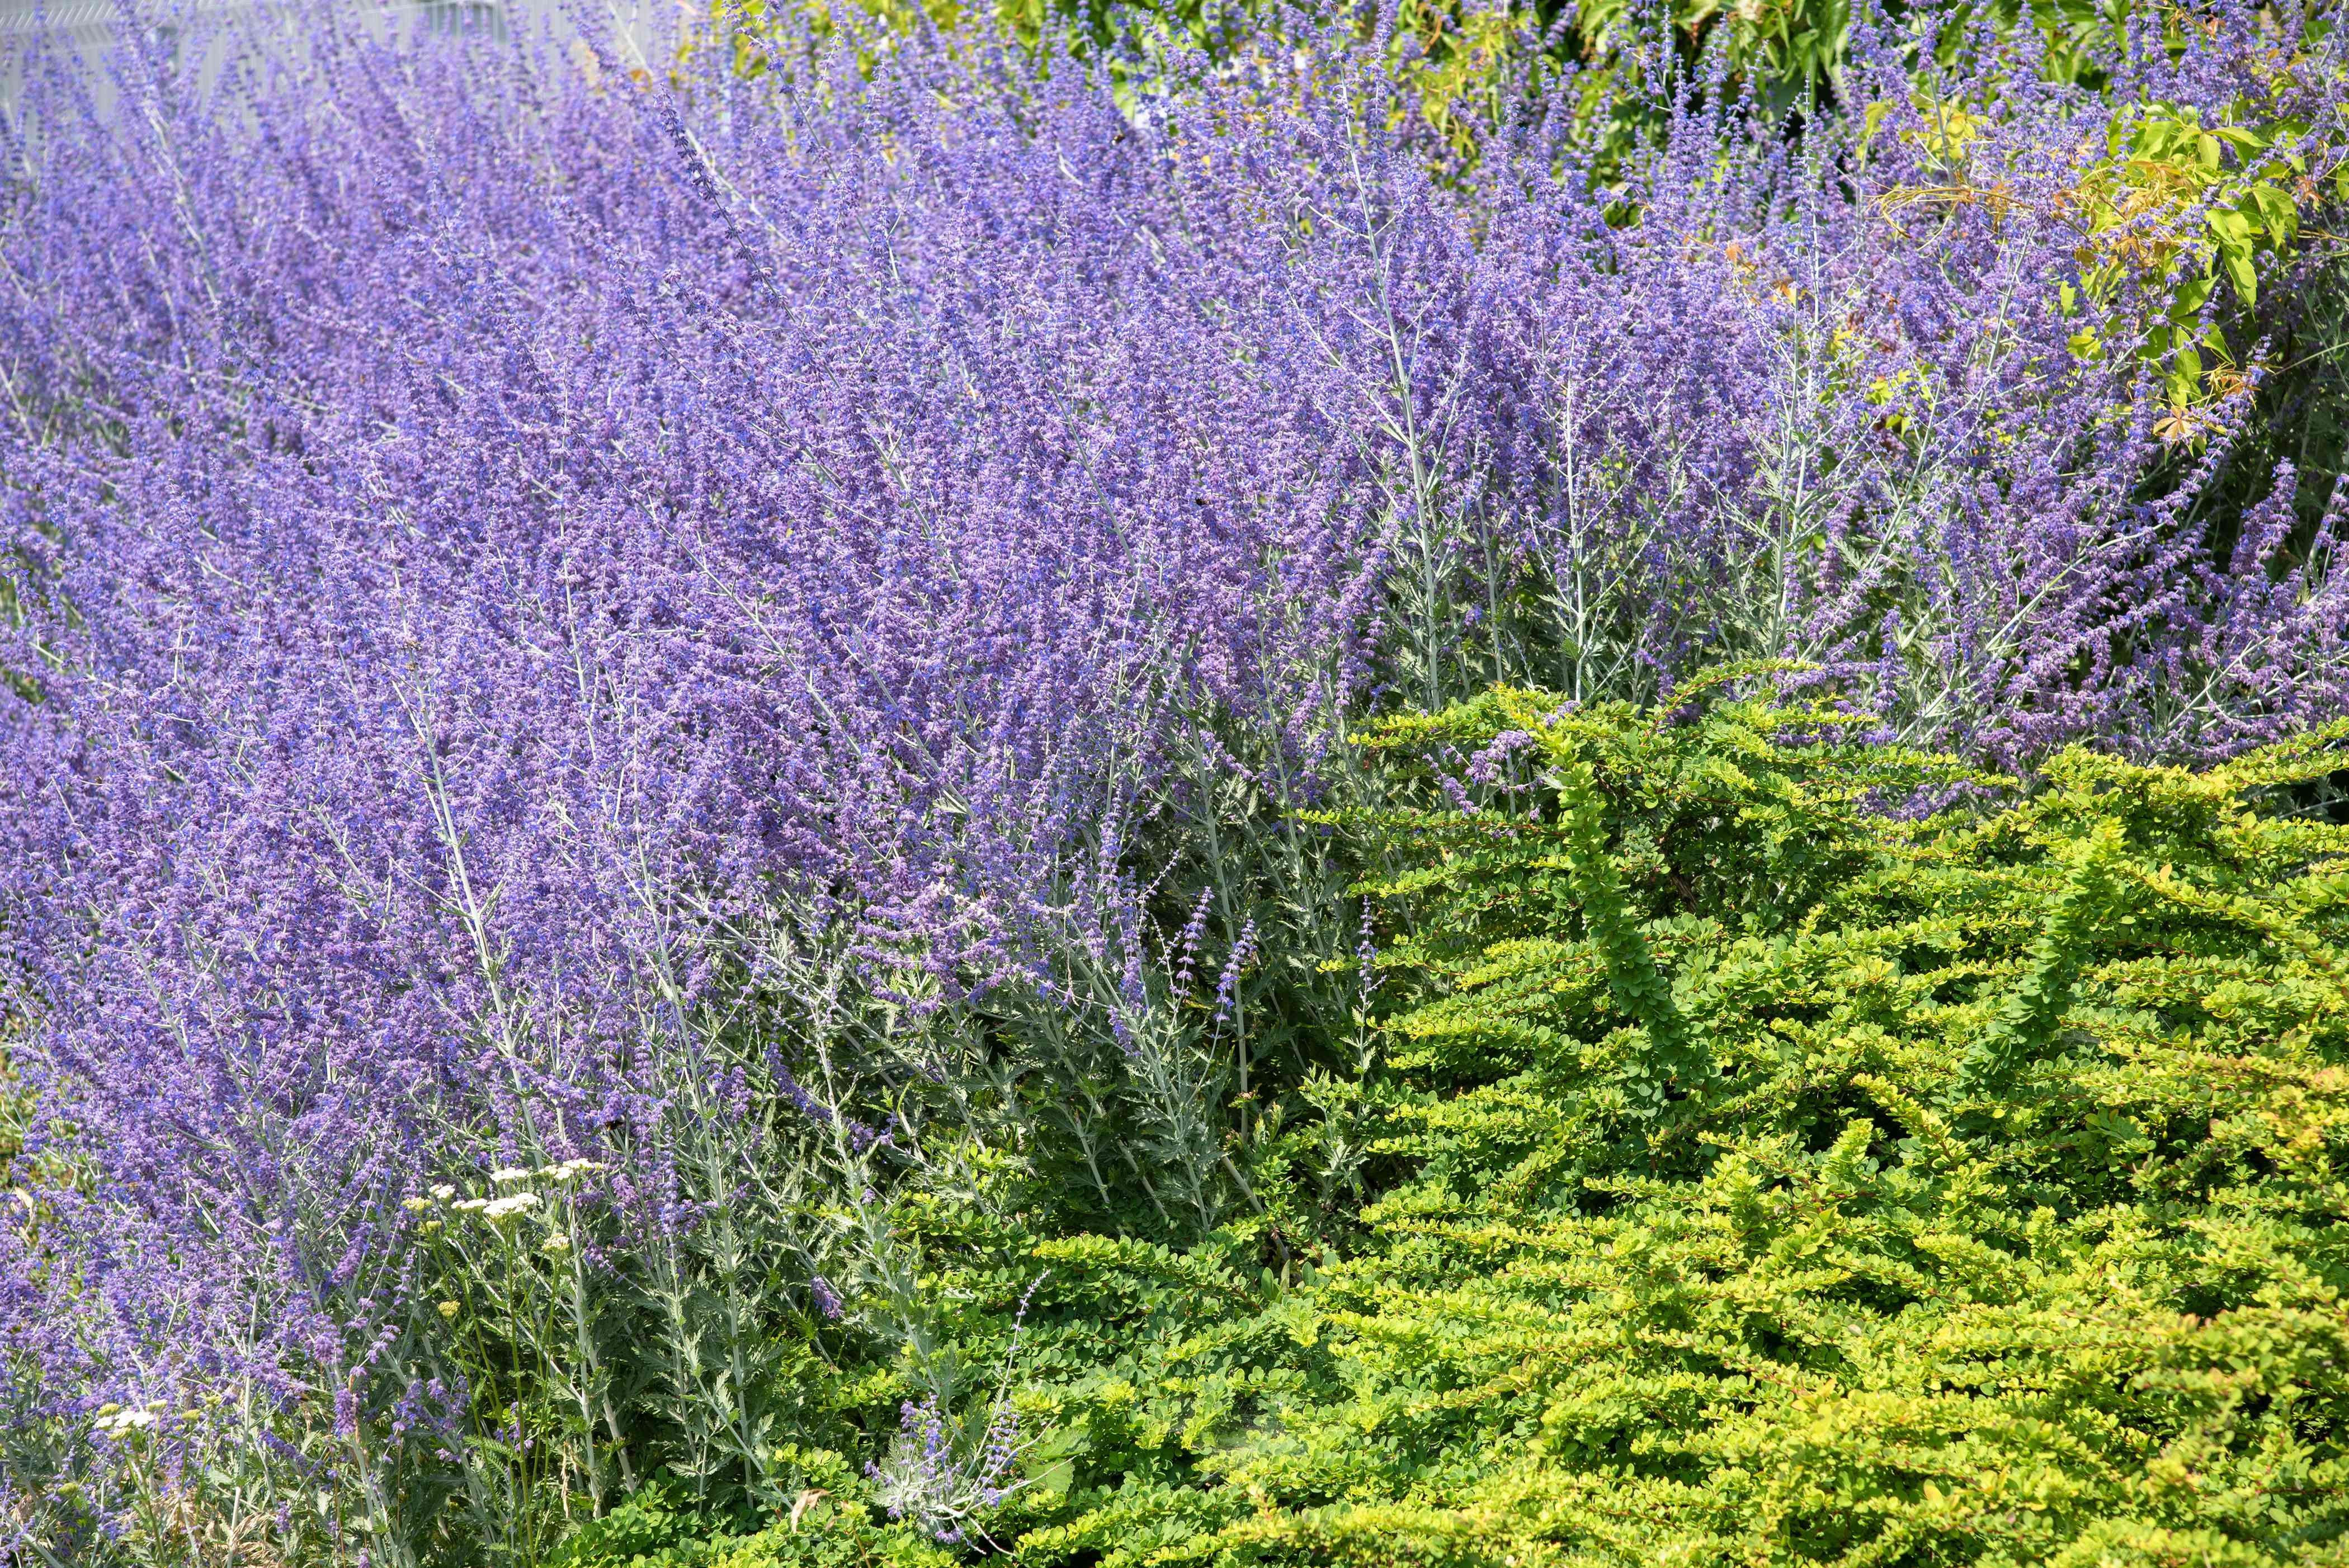 Russian sage her bush with lavender-blue flowers on tall thin stems next to yellow-green bush in sunlight